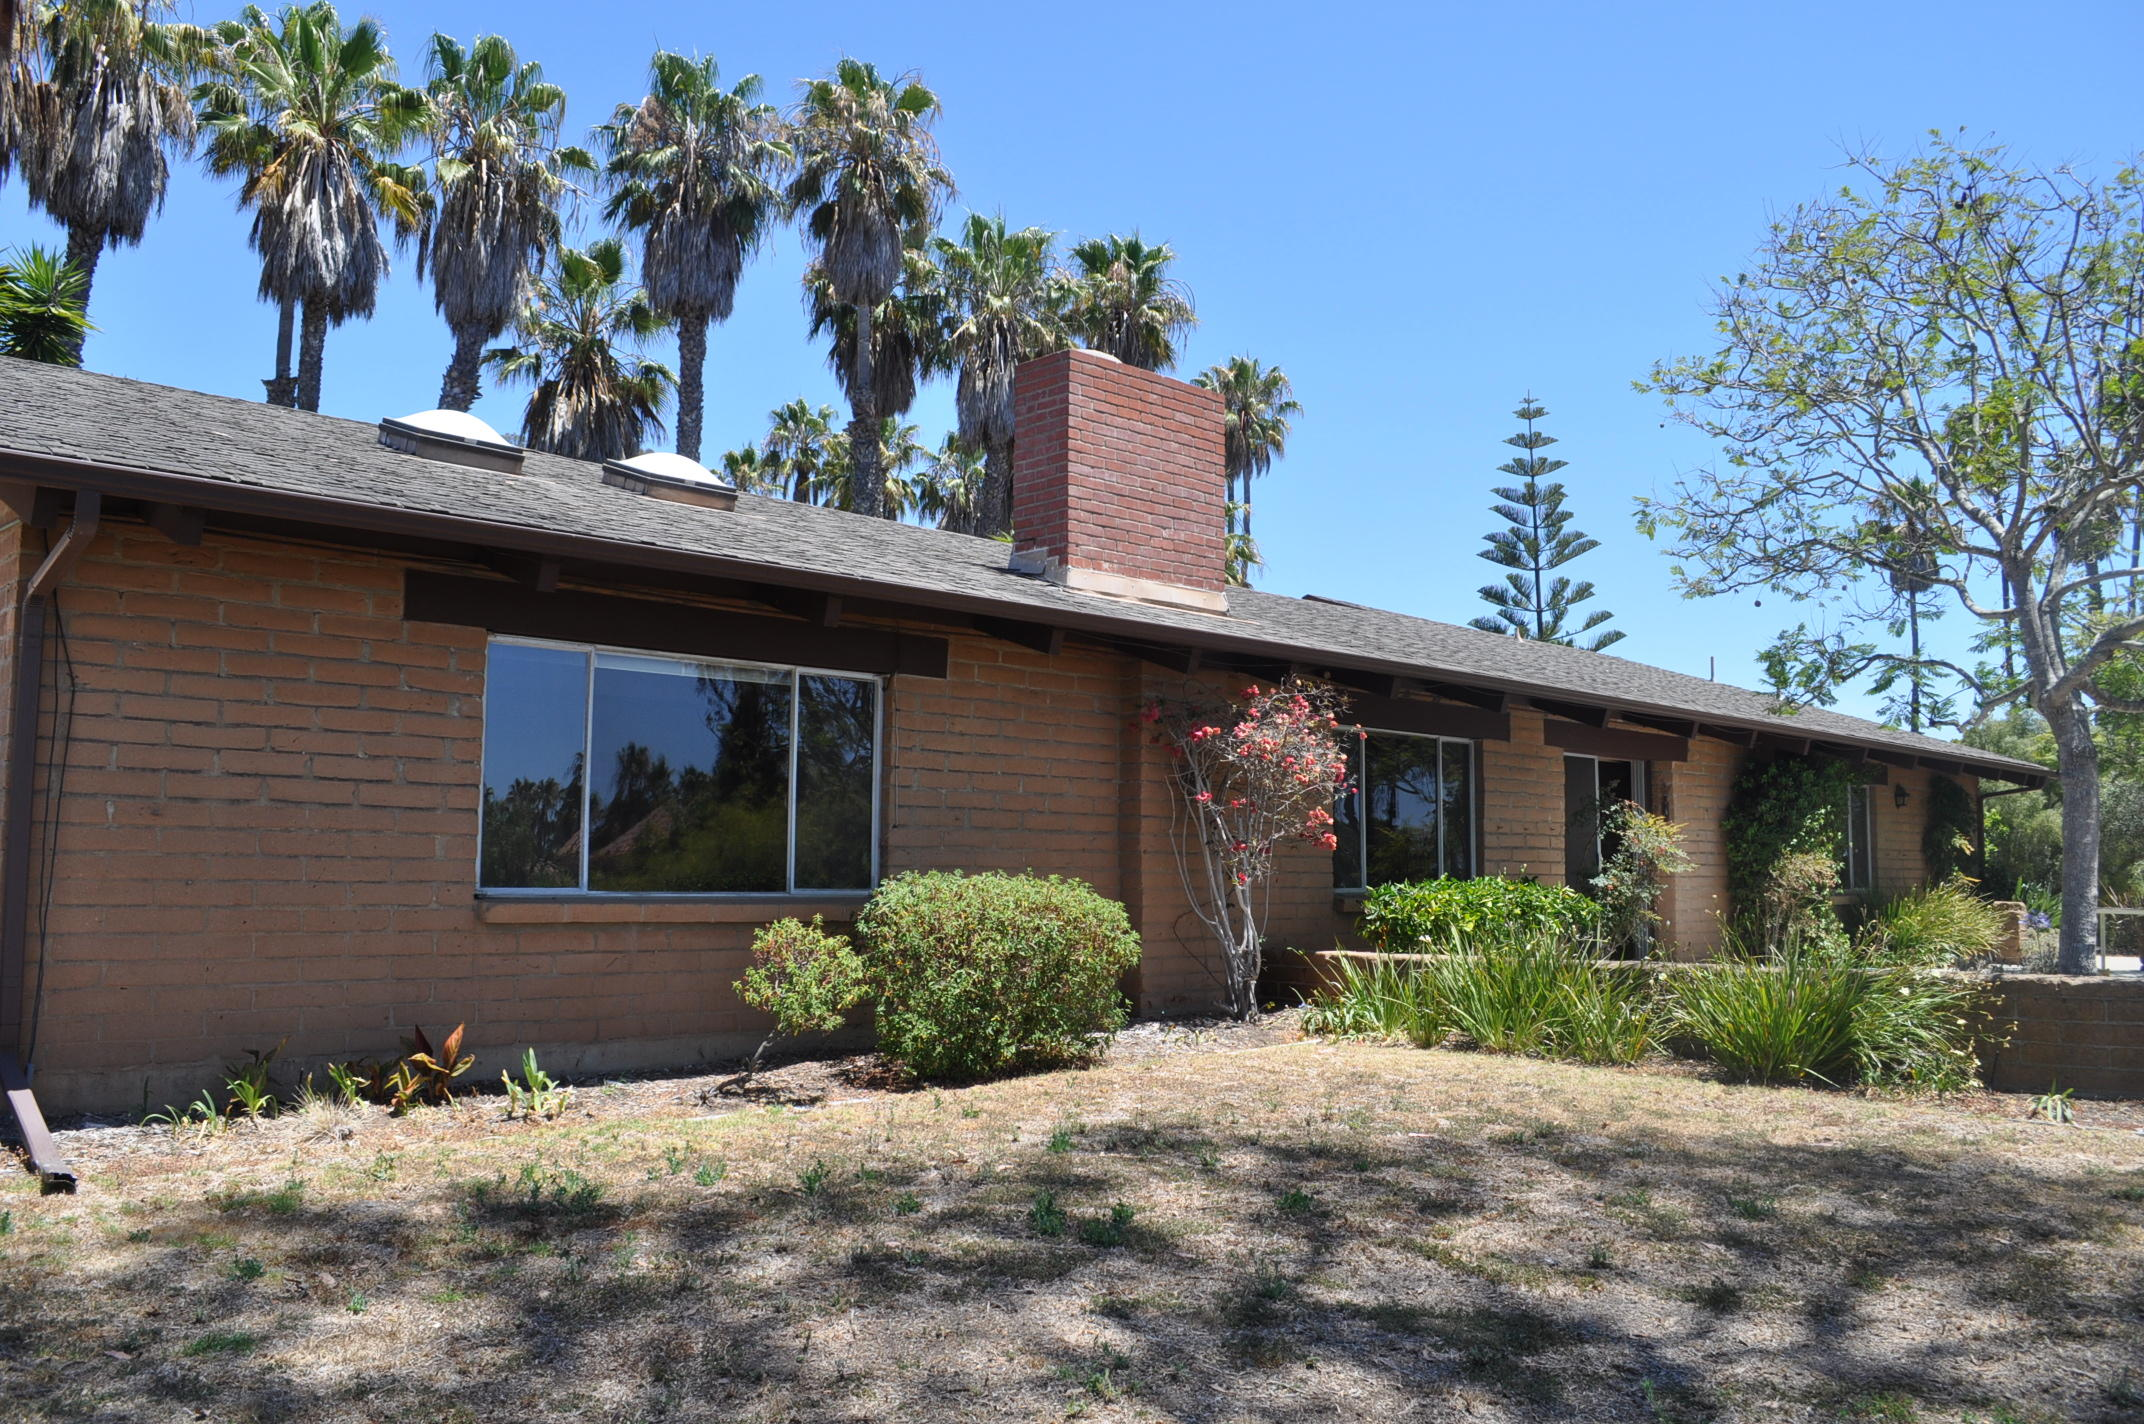 Property photo for 433 Calle Las Caleras Santa Barbara, California 93109 - 16-2661